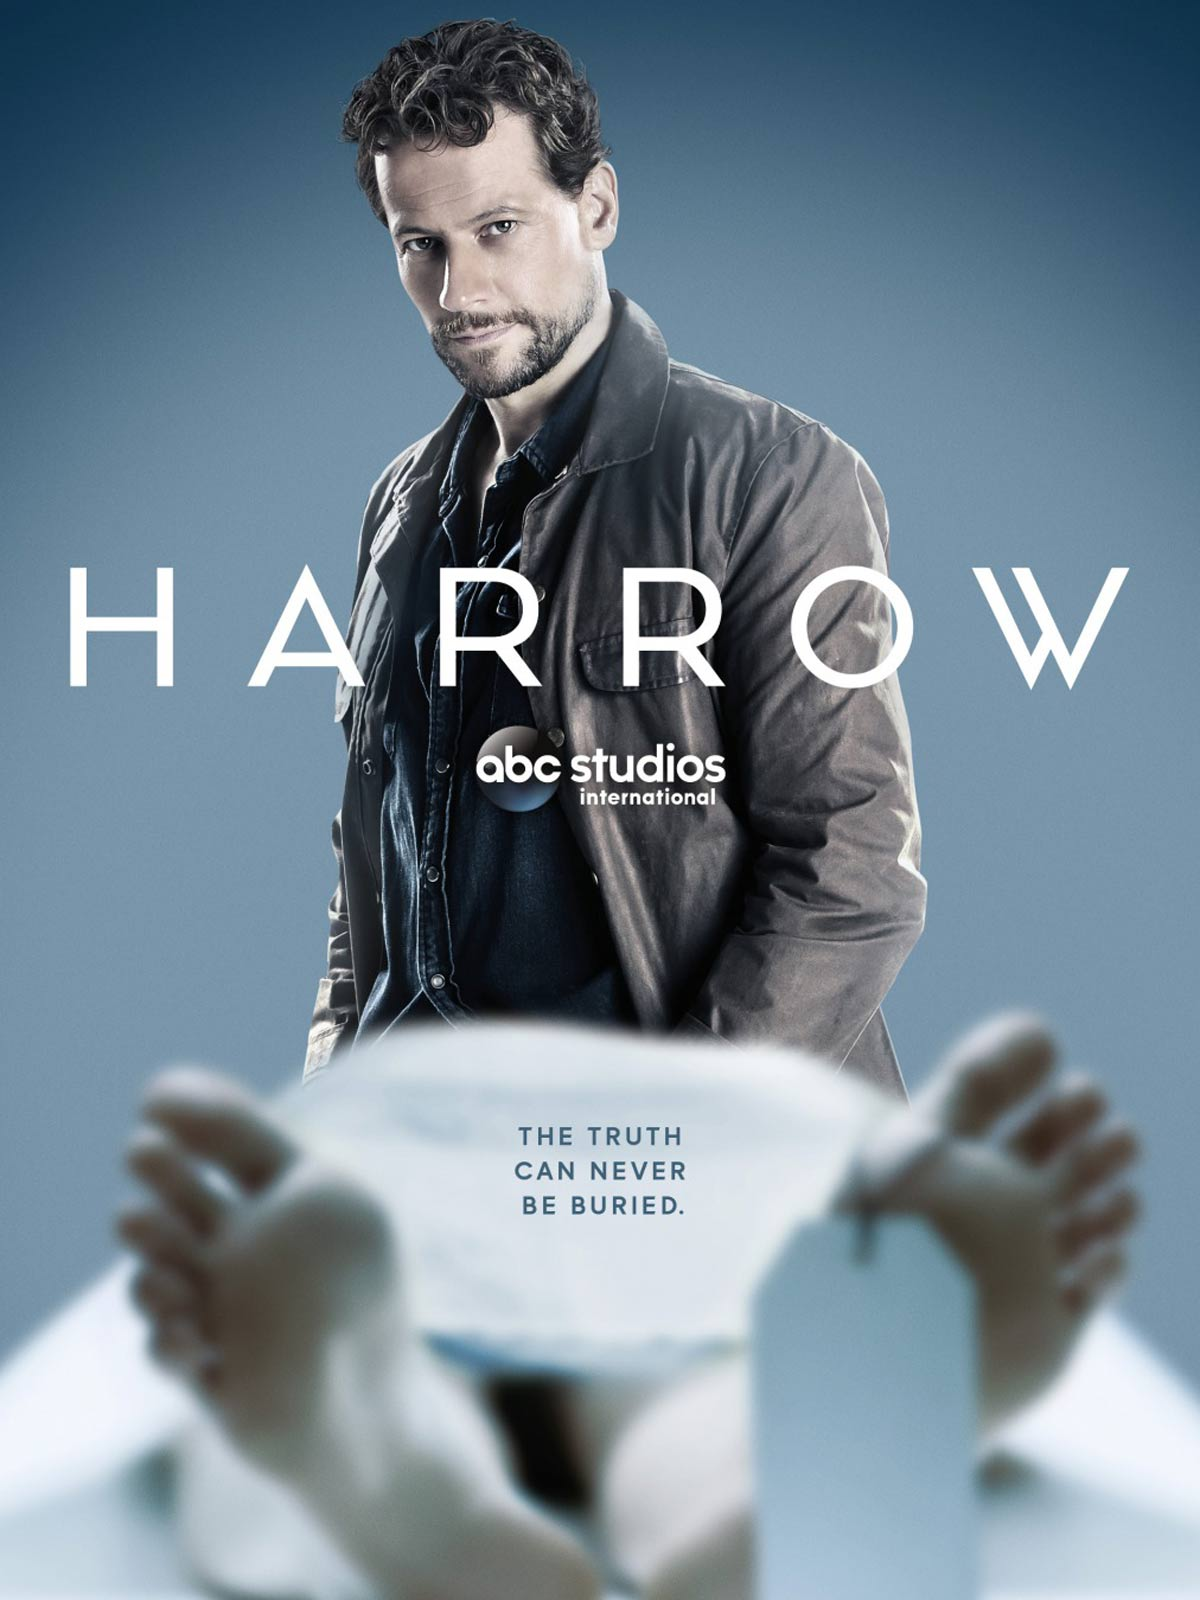 Harrow S01 E07 VOSTFR